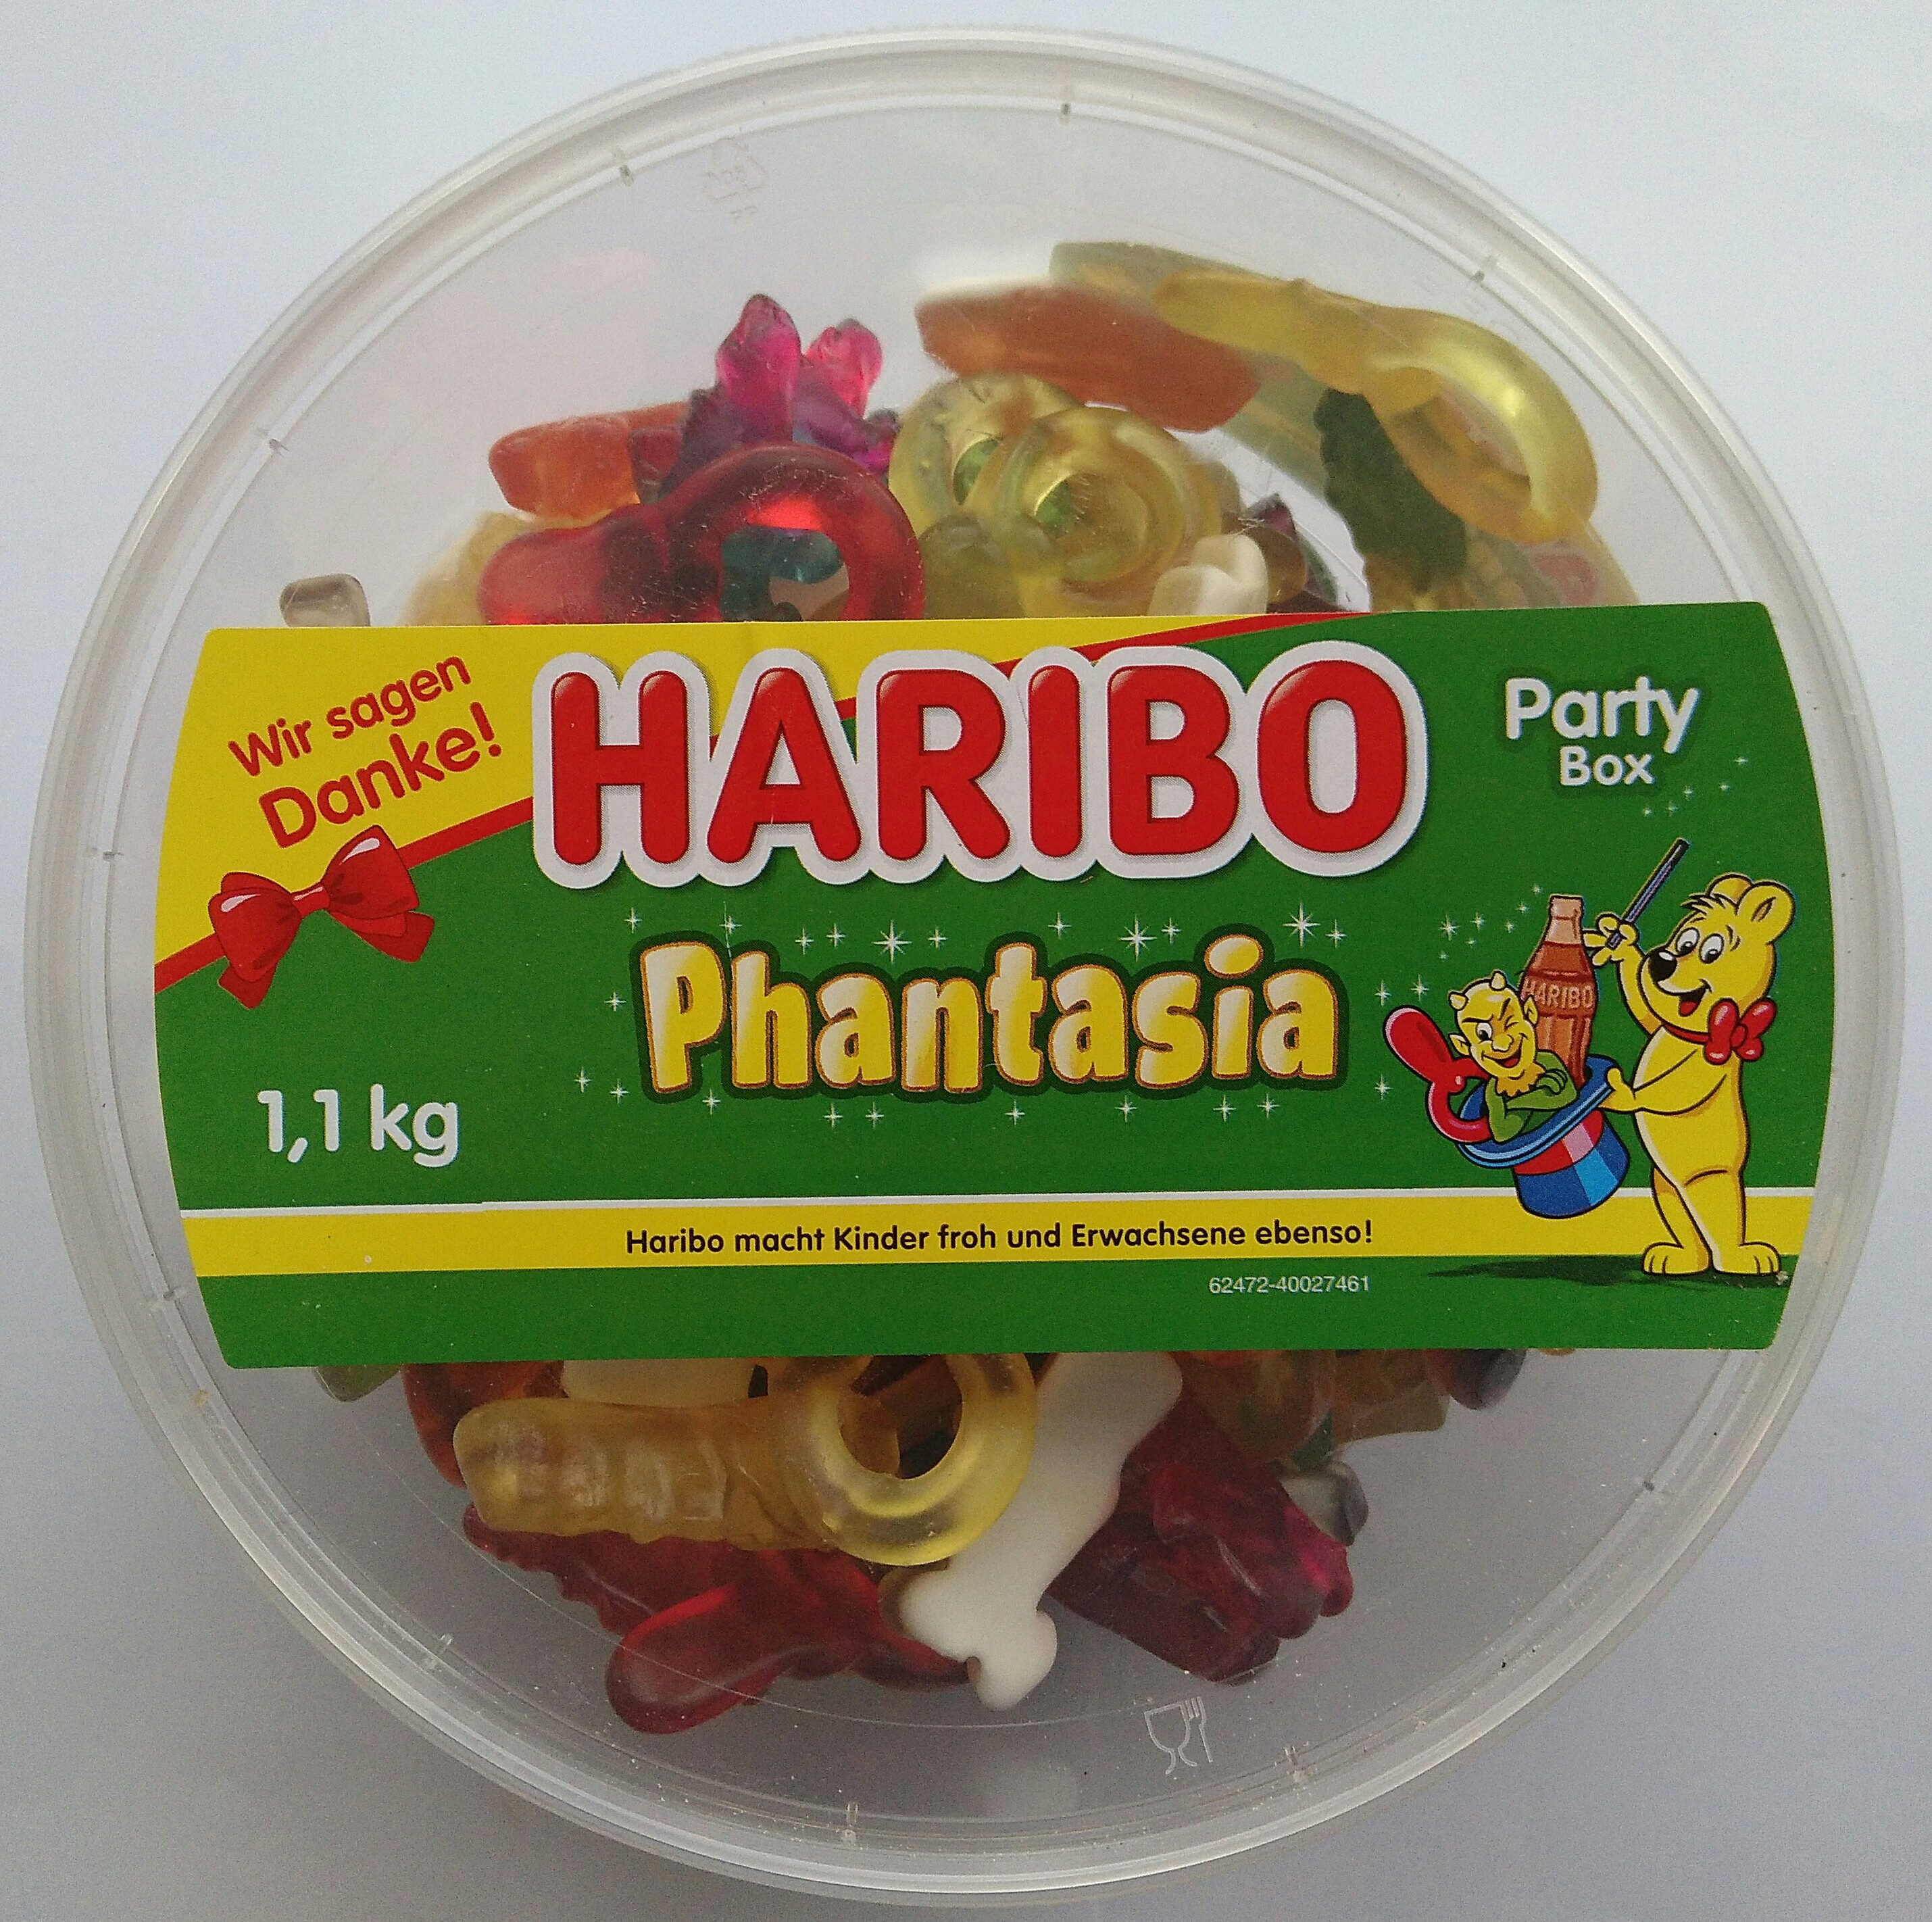 Haribo Phantasia Party Box - Produit